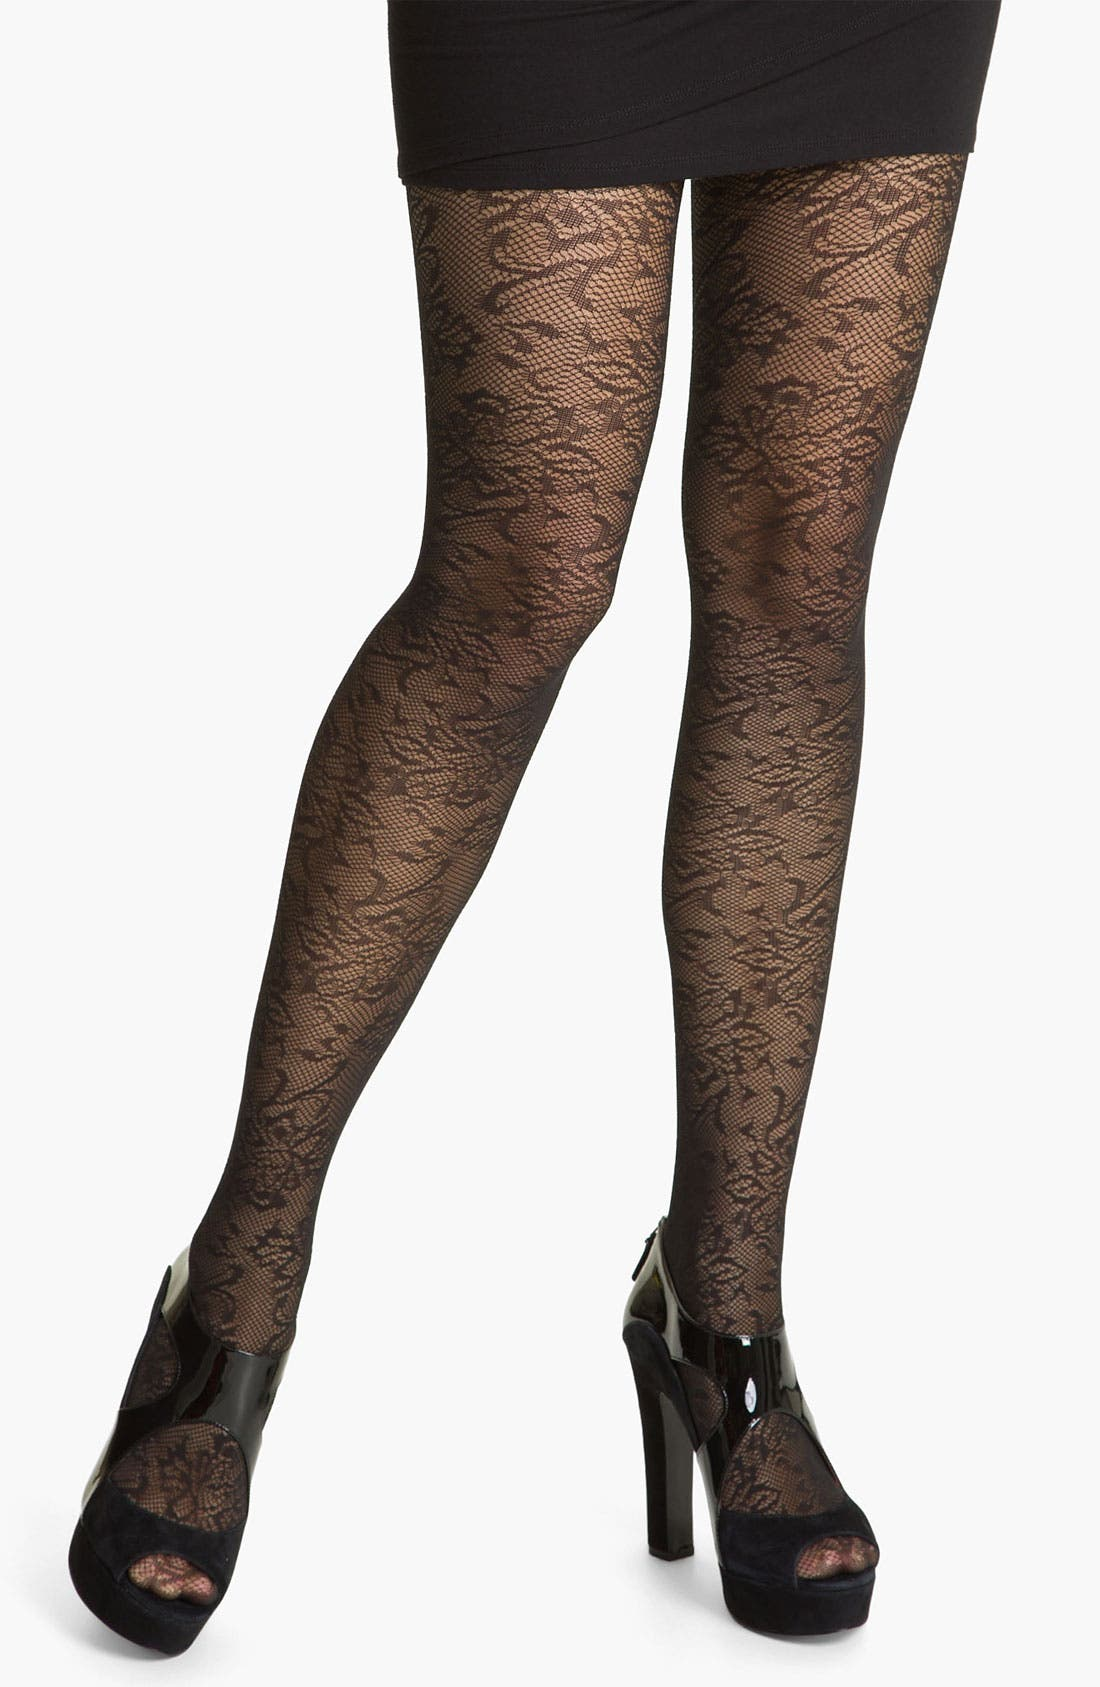 Alternate Image 1 Selected - Nordstrom Net Floral Tights